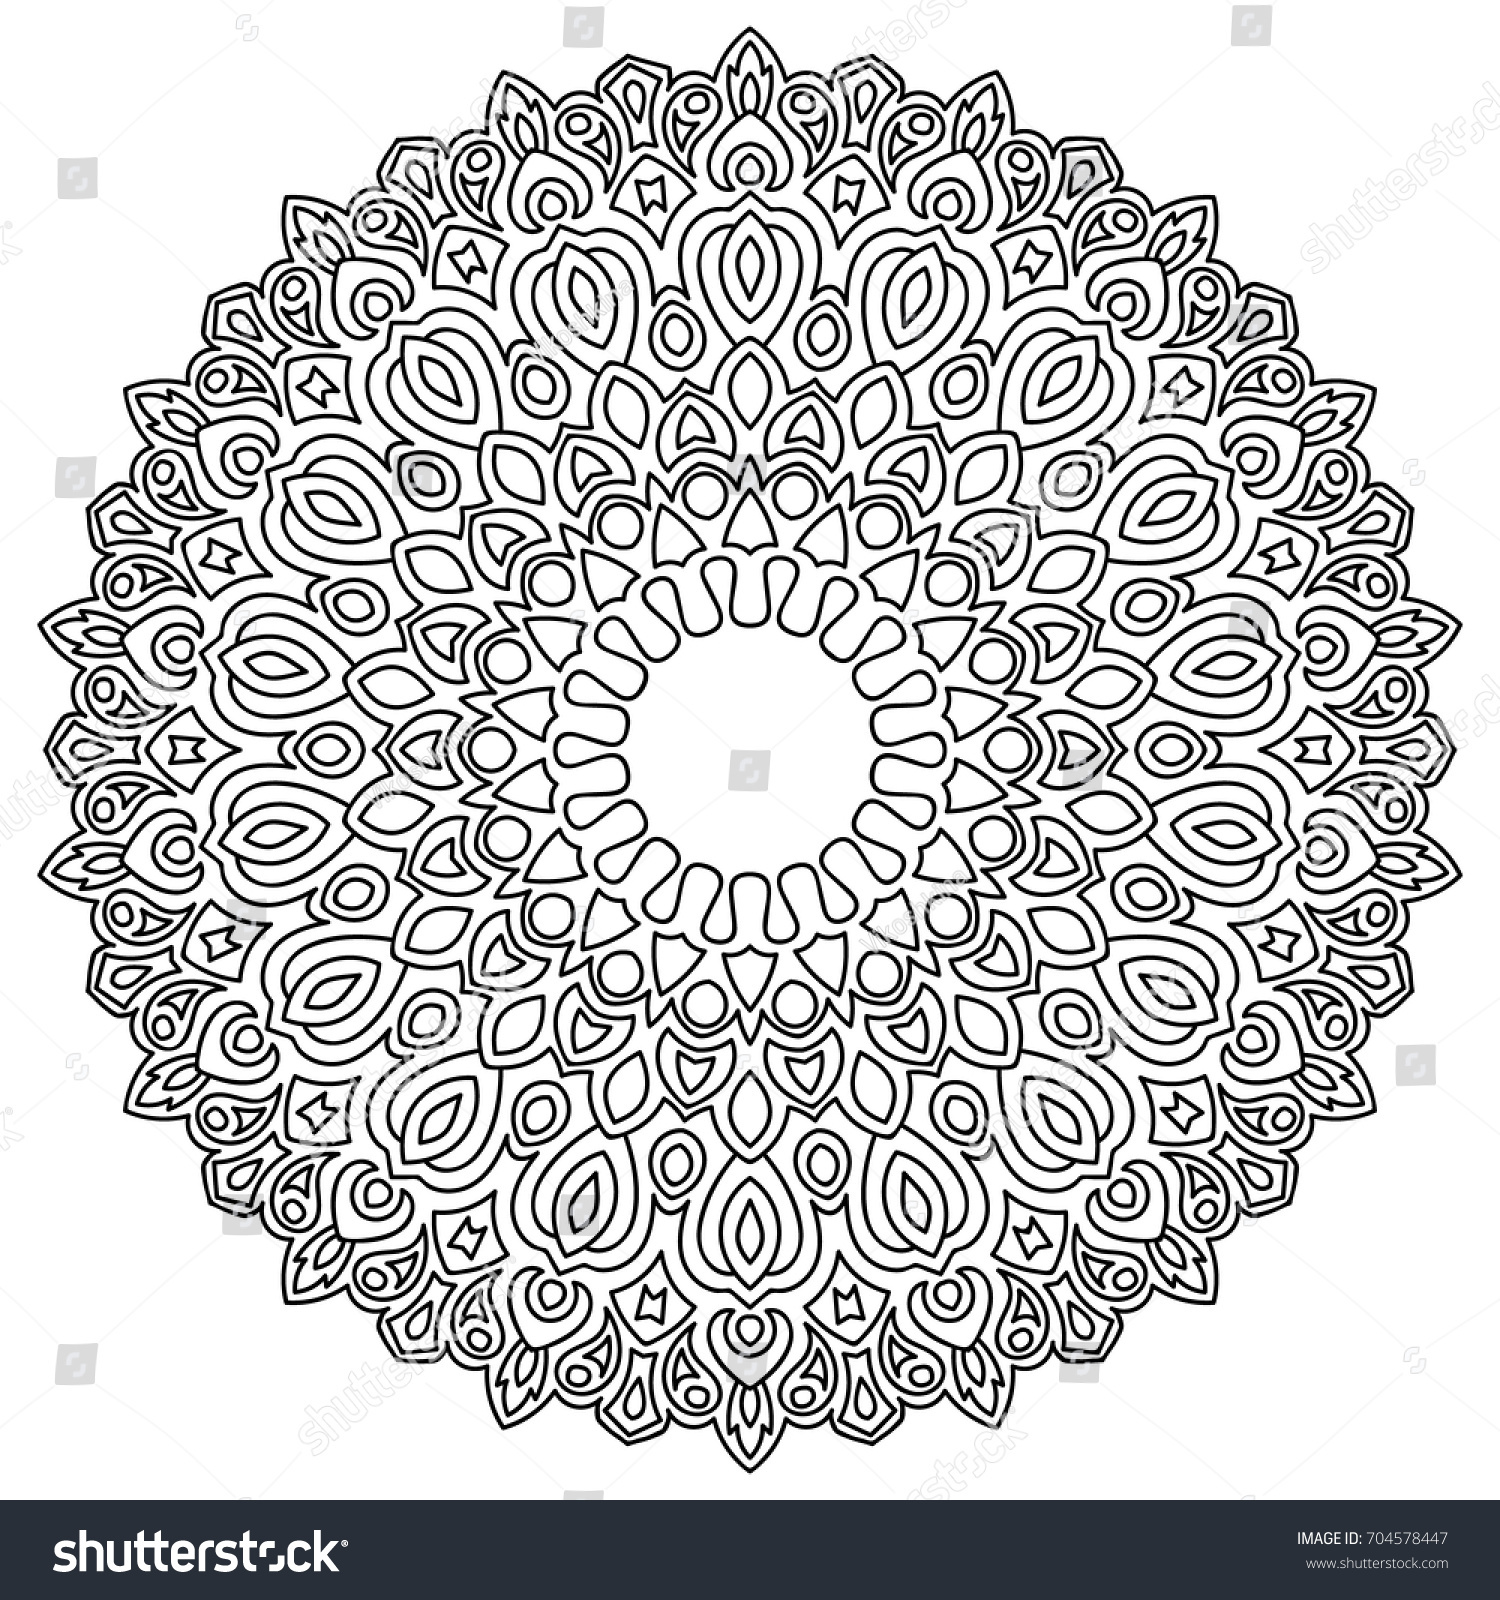 Ethnic Print Adult Coloring Page Mandala Stock Vector